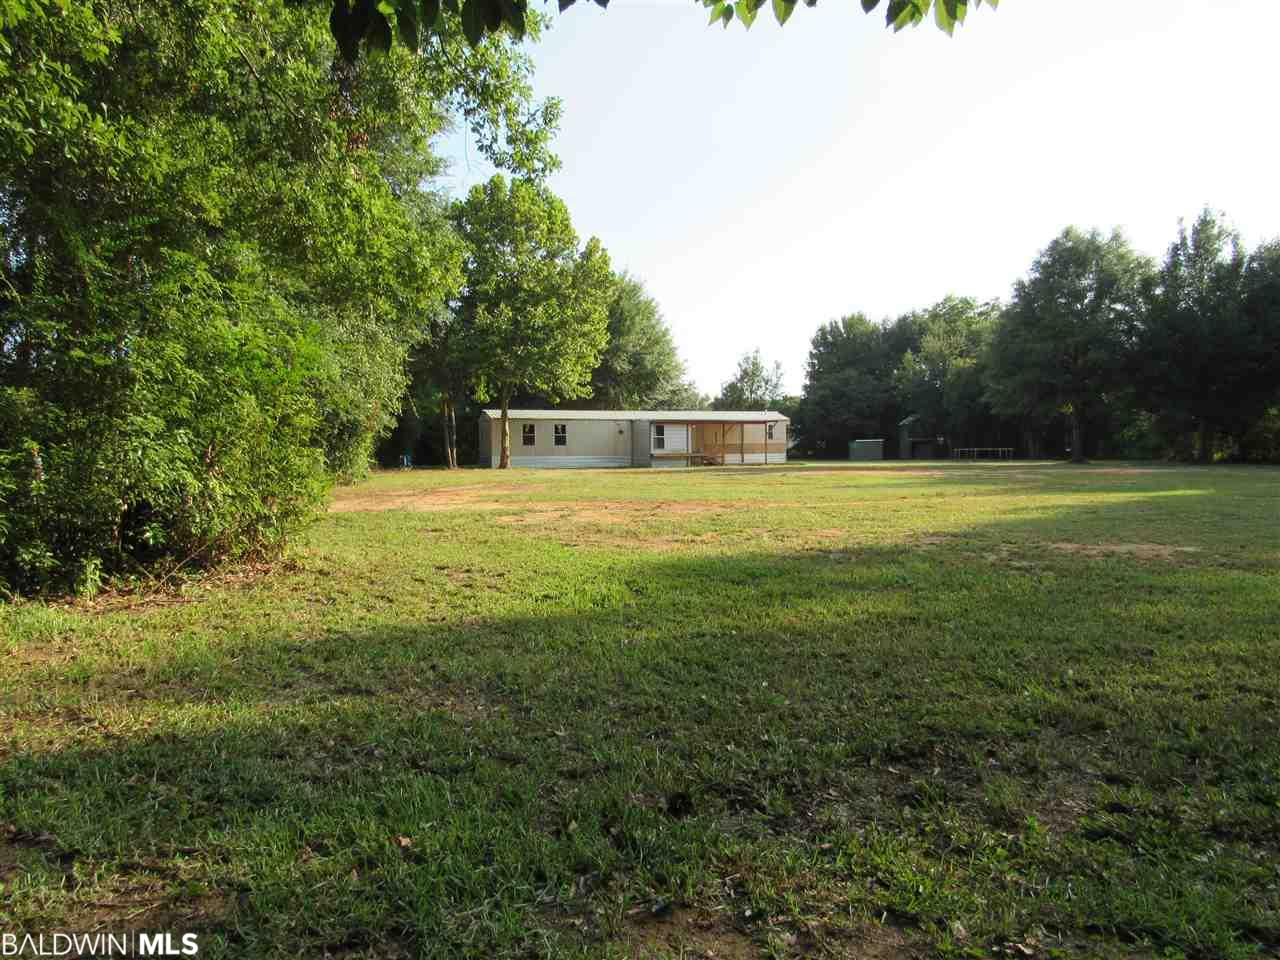 Two acres with a 980 sq. ft. modular home in rural Foley. Large 26x12 living/ kitchen/dining room combination. 756 sq. ft. metal      building/garage is almost new, with water and power. Two-story children's playhouse. Property entirely fenced. Seller open to owner financing with 20% downpayment. LISTING BROKER MAKES NO REPRESENTATION TO SQUARE FOOTAGE ACCURACY. BUYER TO VERIFY.